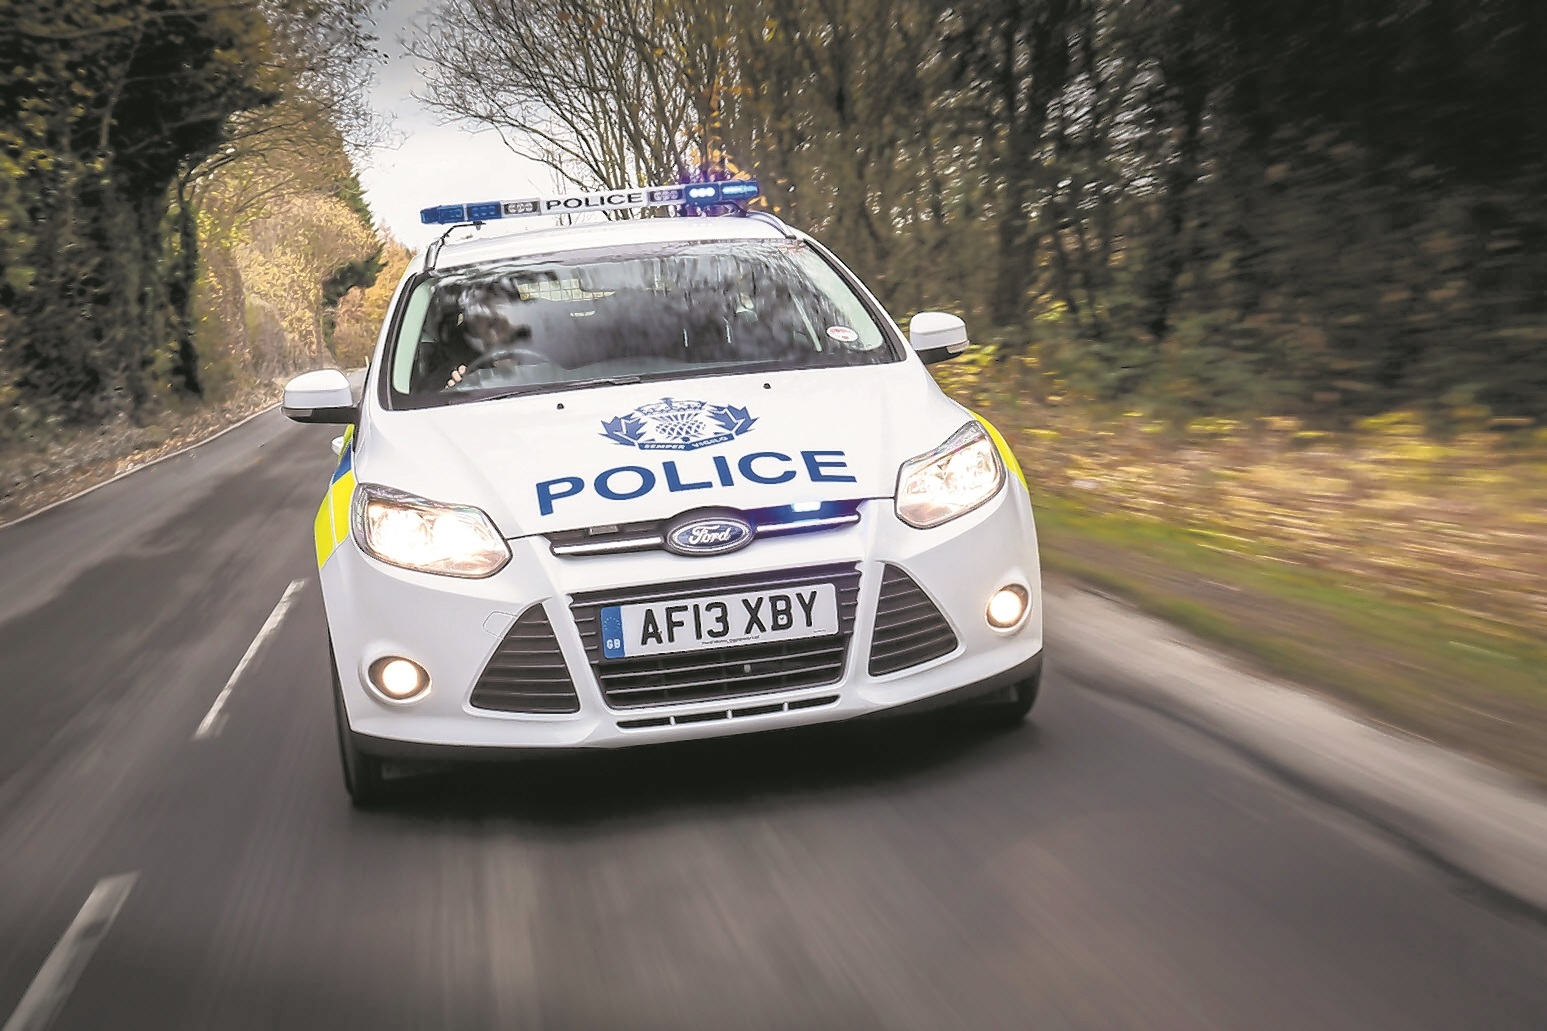 Police on the hunt for fake cop driving near Clacks